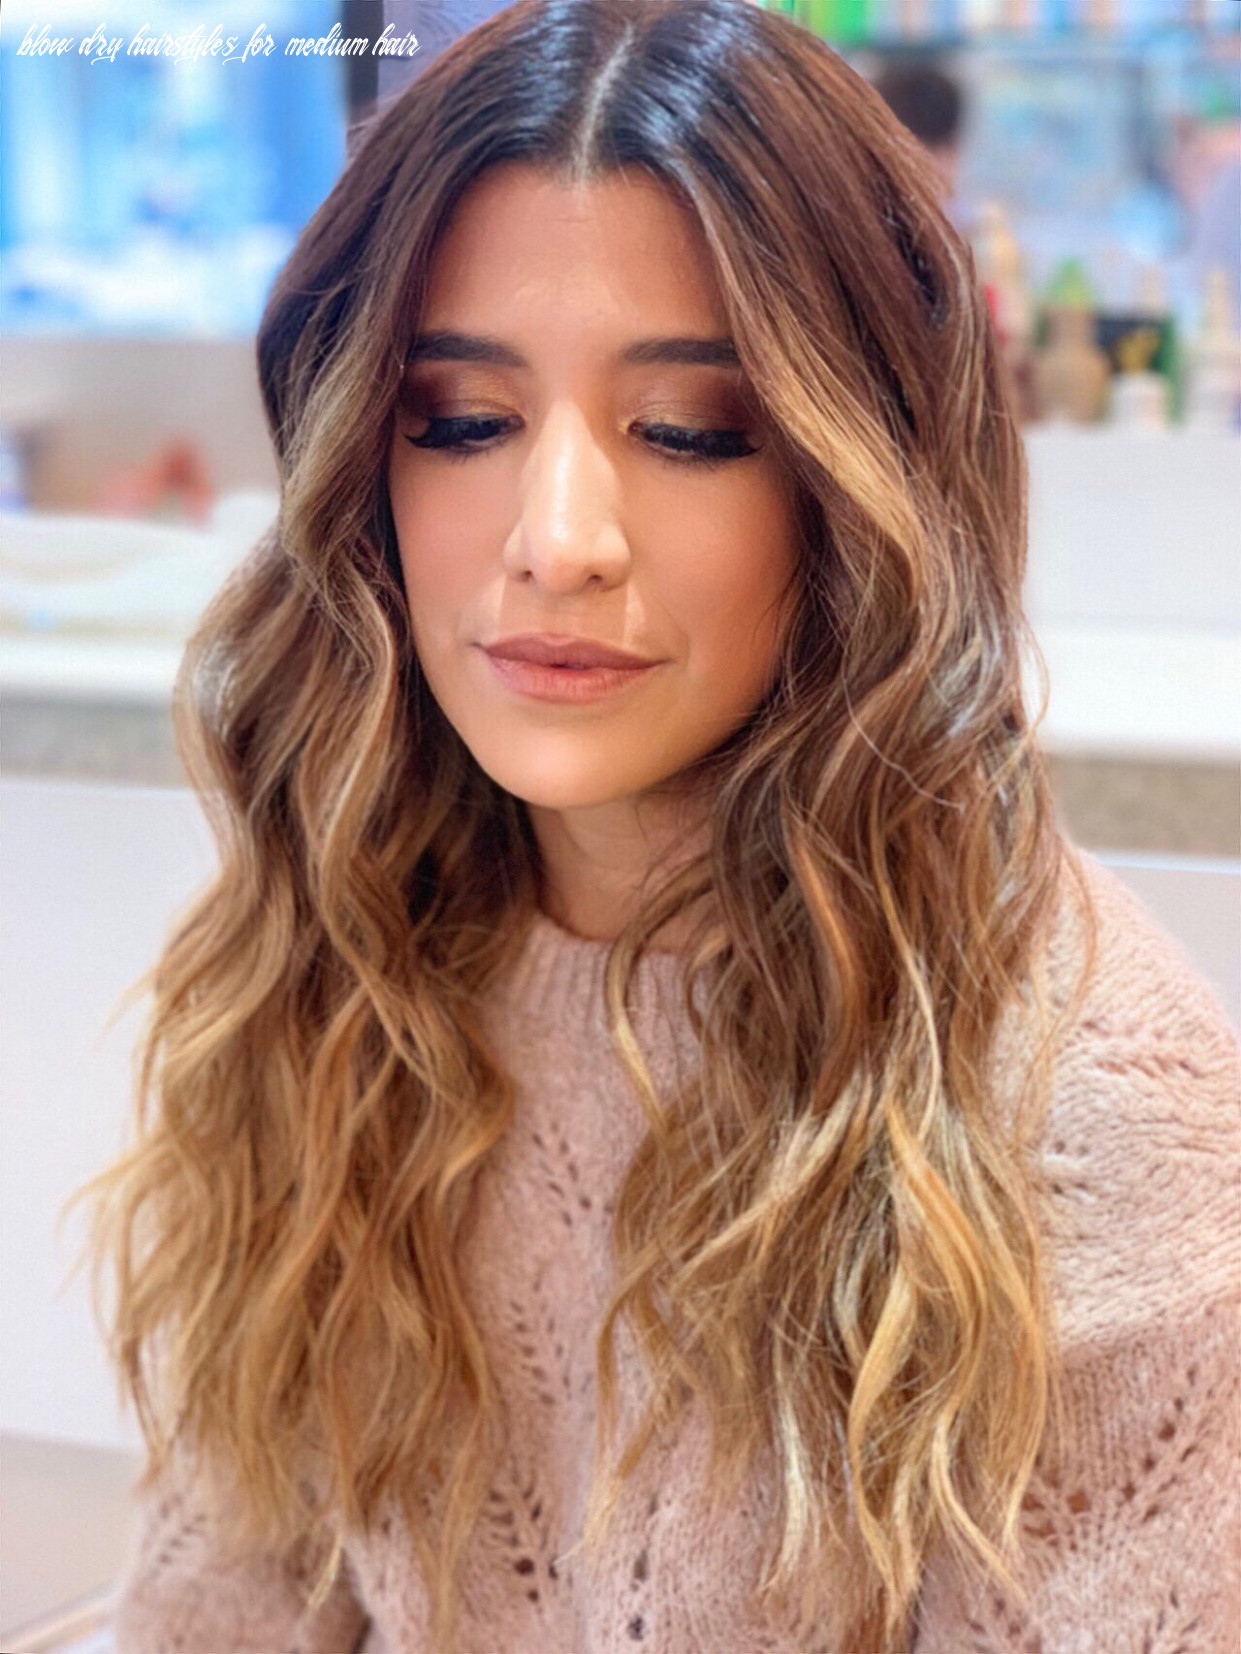 Services | Blowout hair, Long face hairstyles, Hair lengths